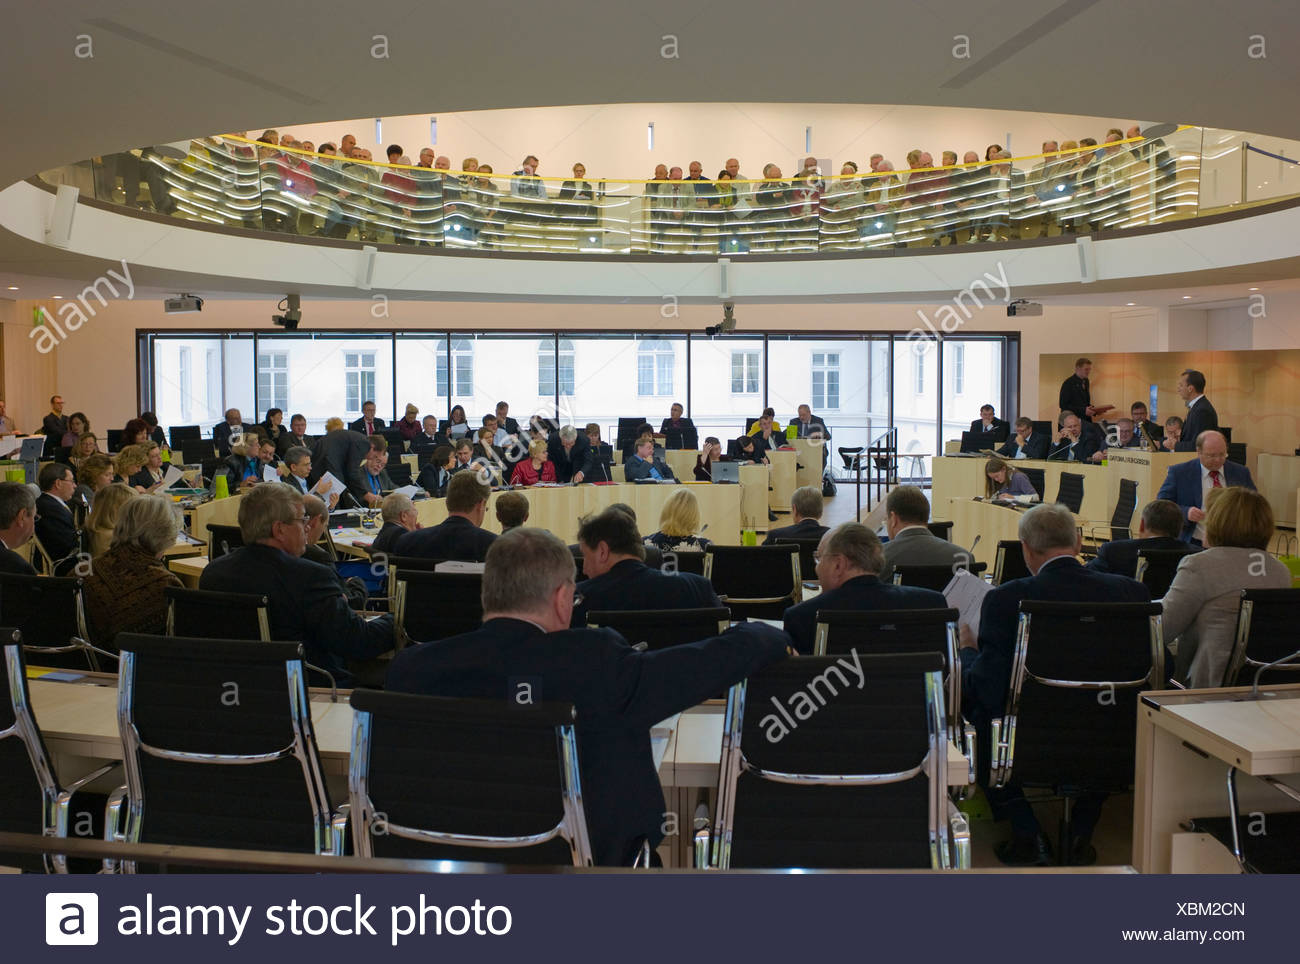 Delegates in the Plenarsaal or plenary assembly hall of the Hessian Landtag, Parliament, Wiesbaden, Hesse, Germany, Europe - Stock Image